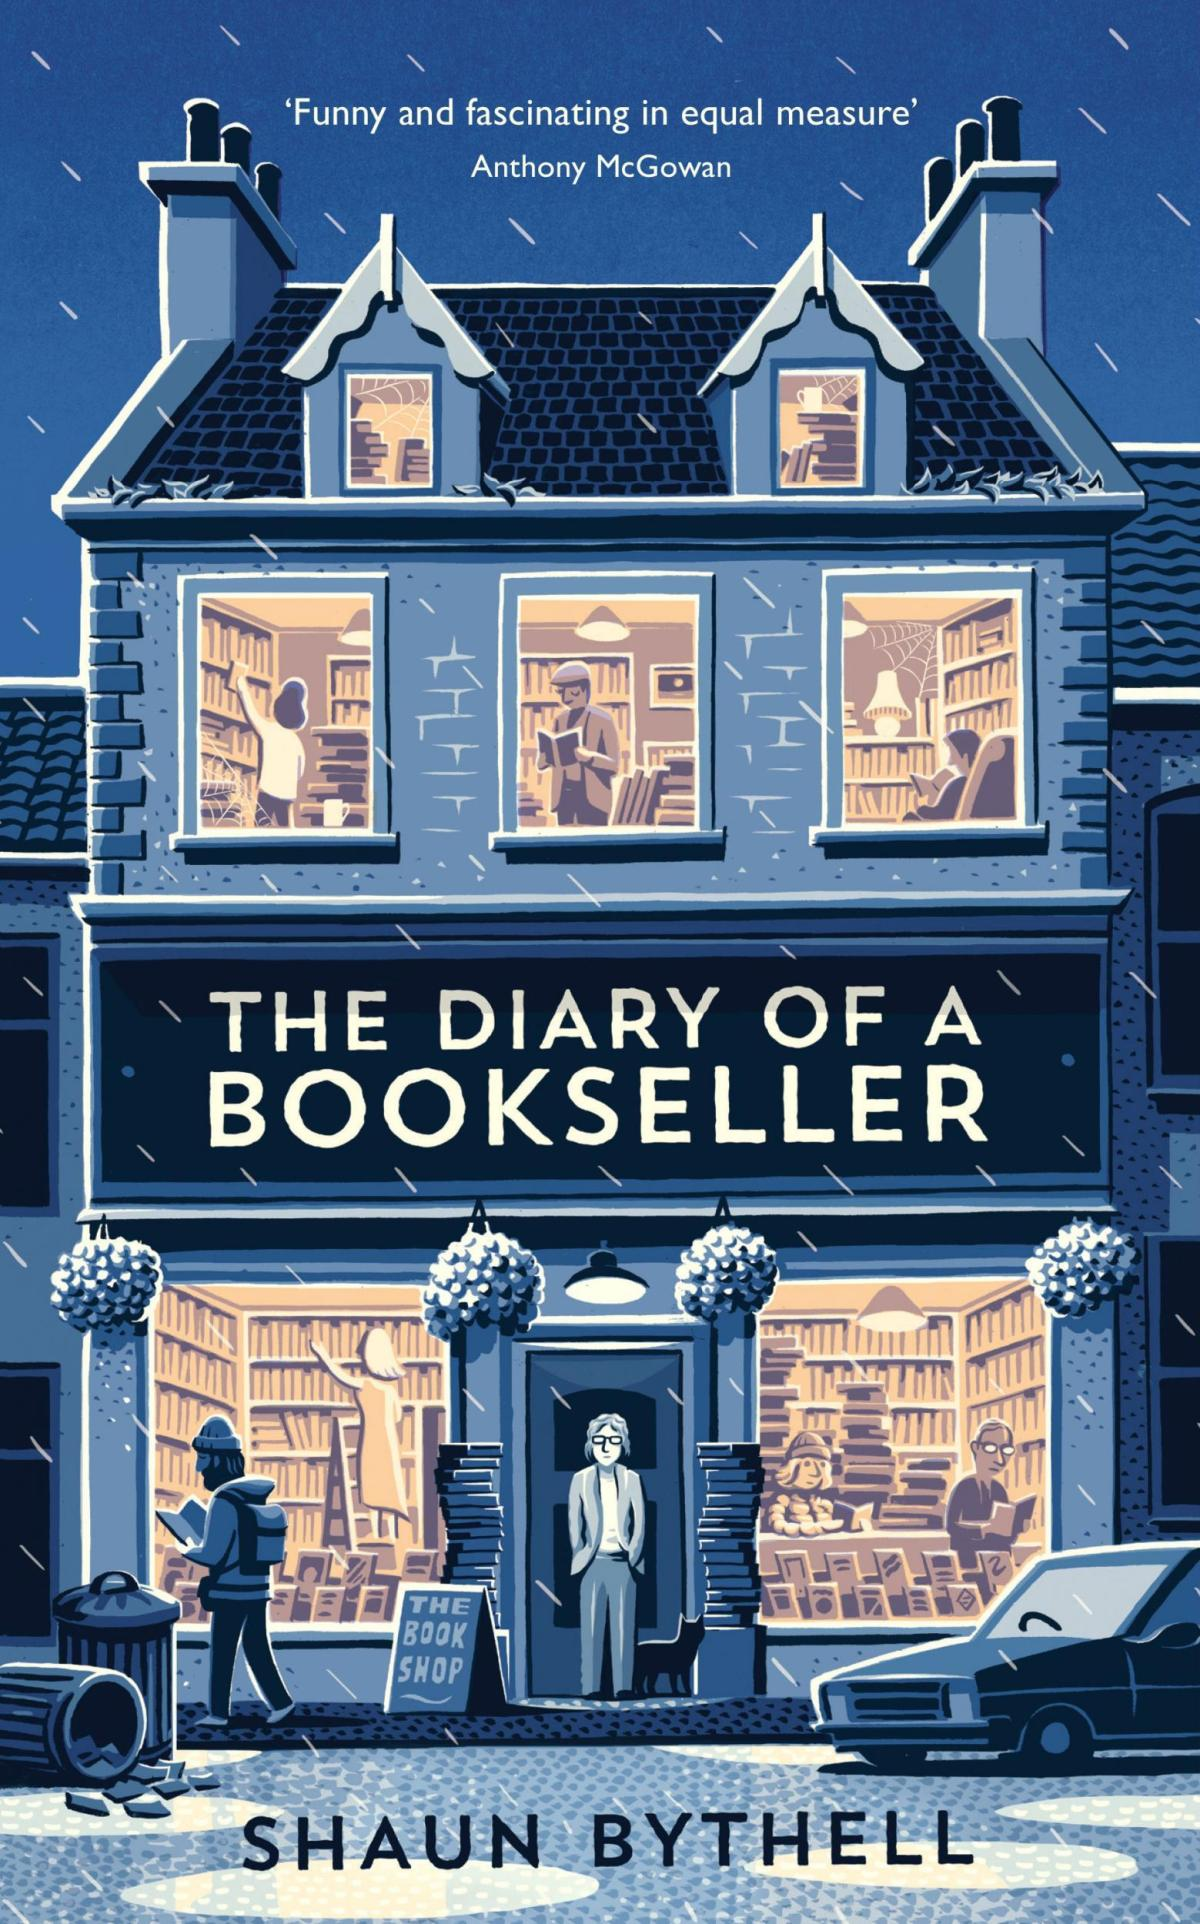 Book Review: The Diary of a Bookseller by Shaun Bythell